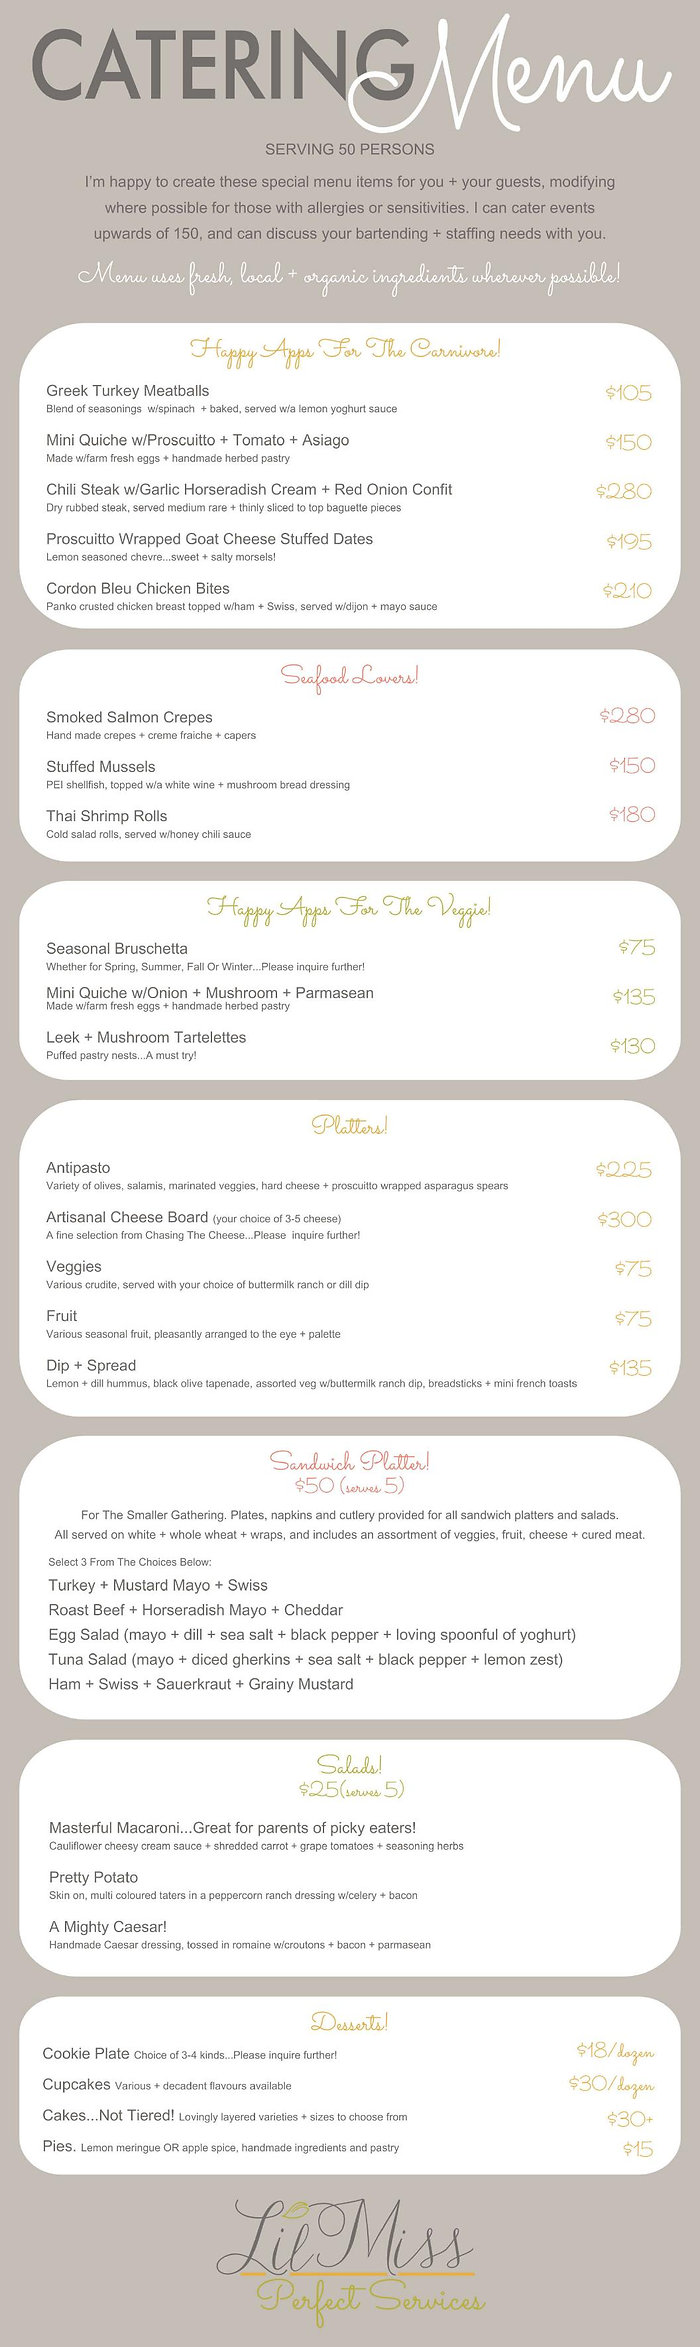 Lyndele Gauci lilmissperfect menu revise